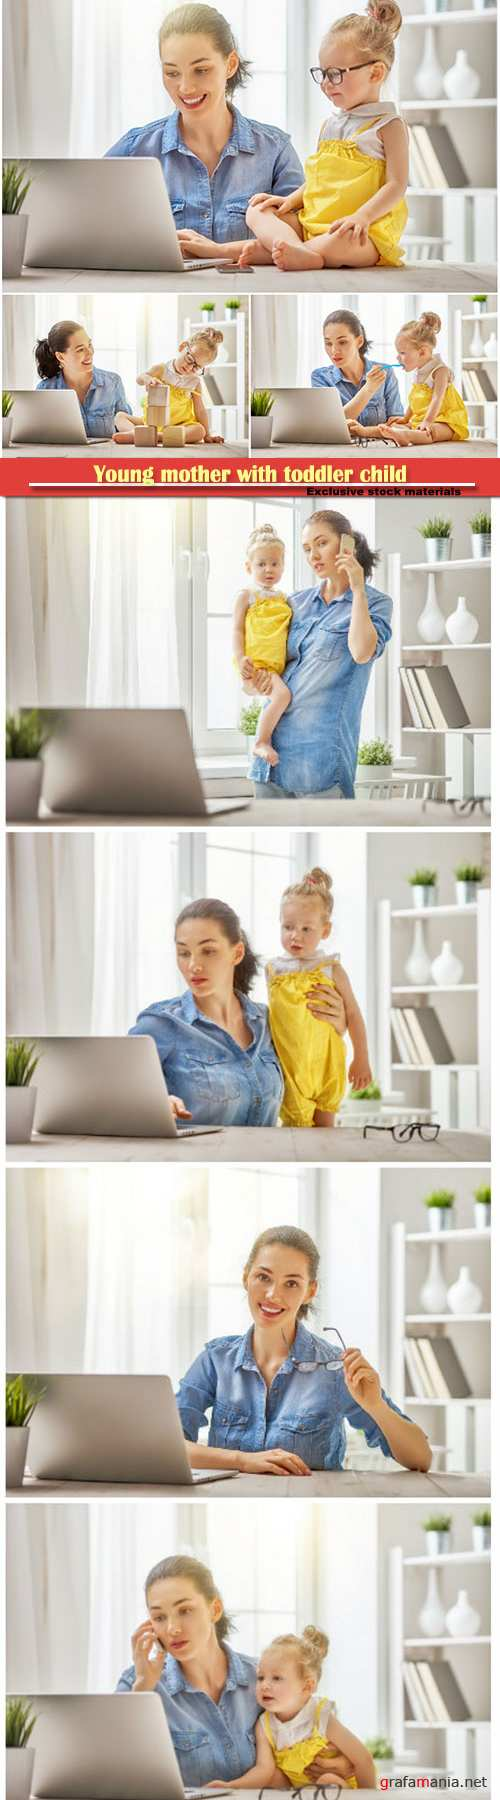 Young mother with toddler child working on the computer from home